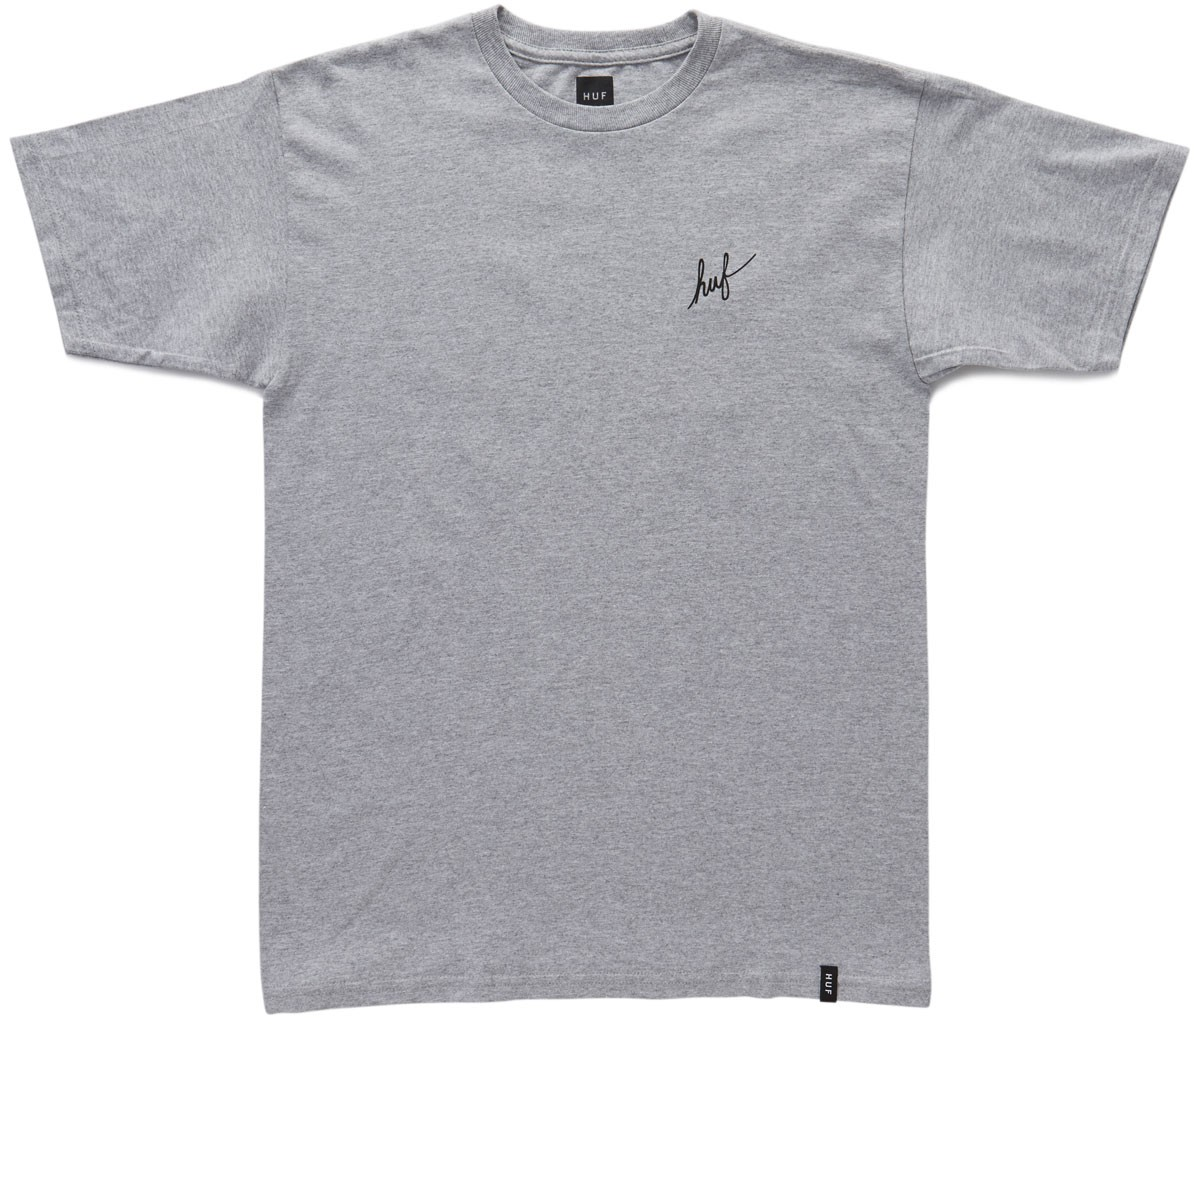 HUF Muted Military Classic H T-Shirt - Grey Heather